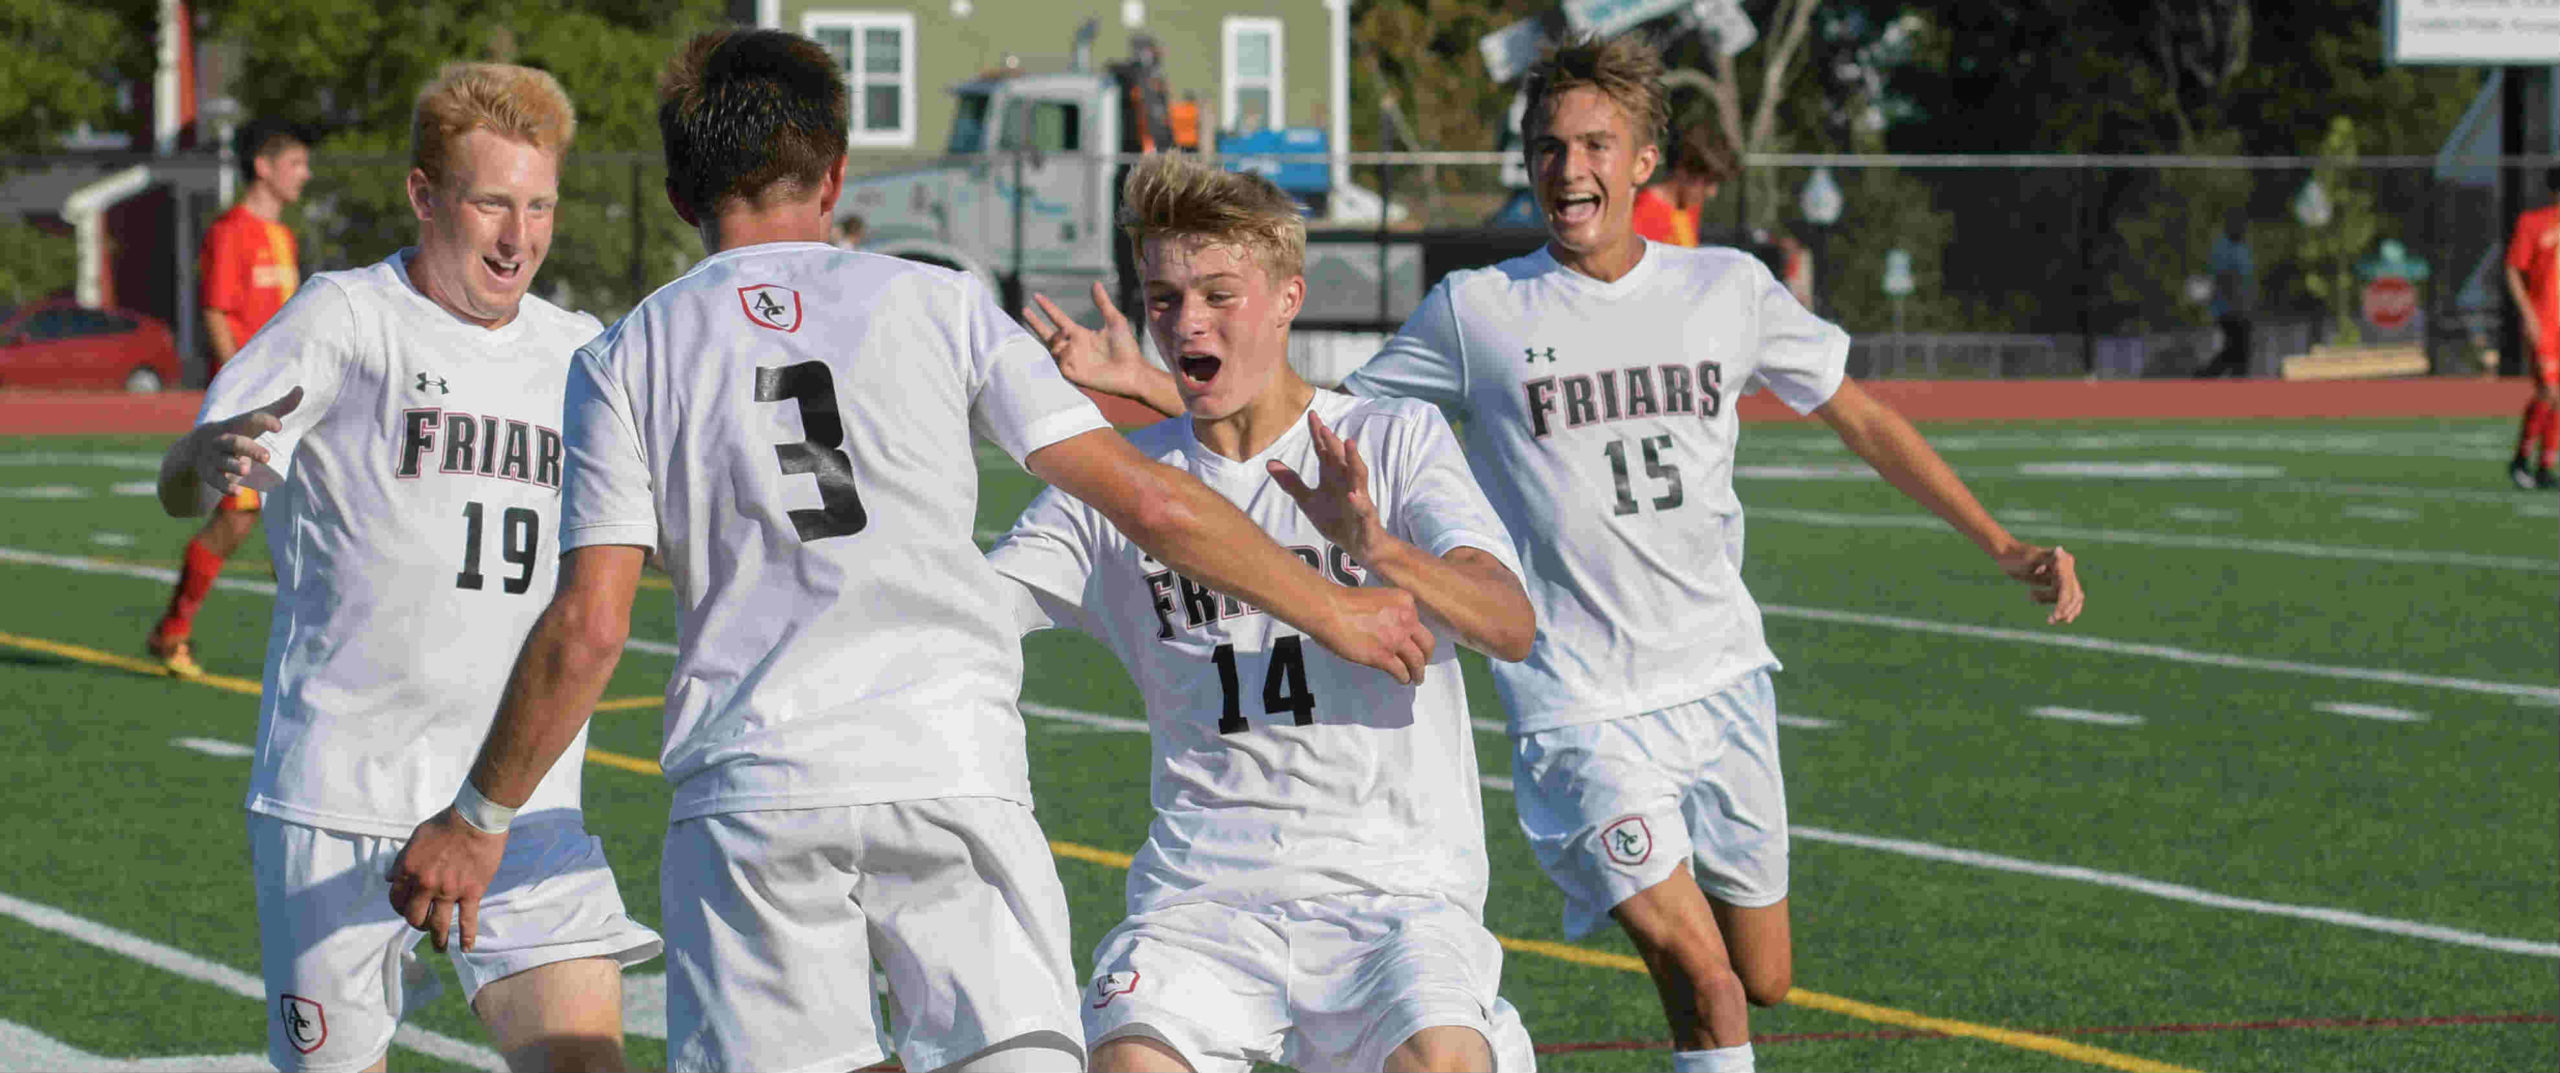 Curley soccer takes Reif Alumni Cup back from Calvert Hall